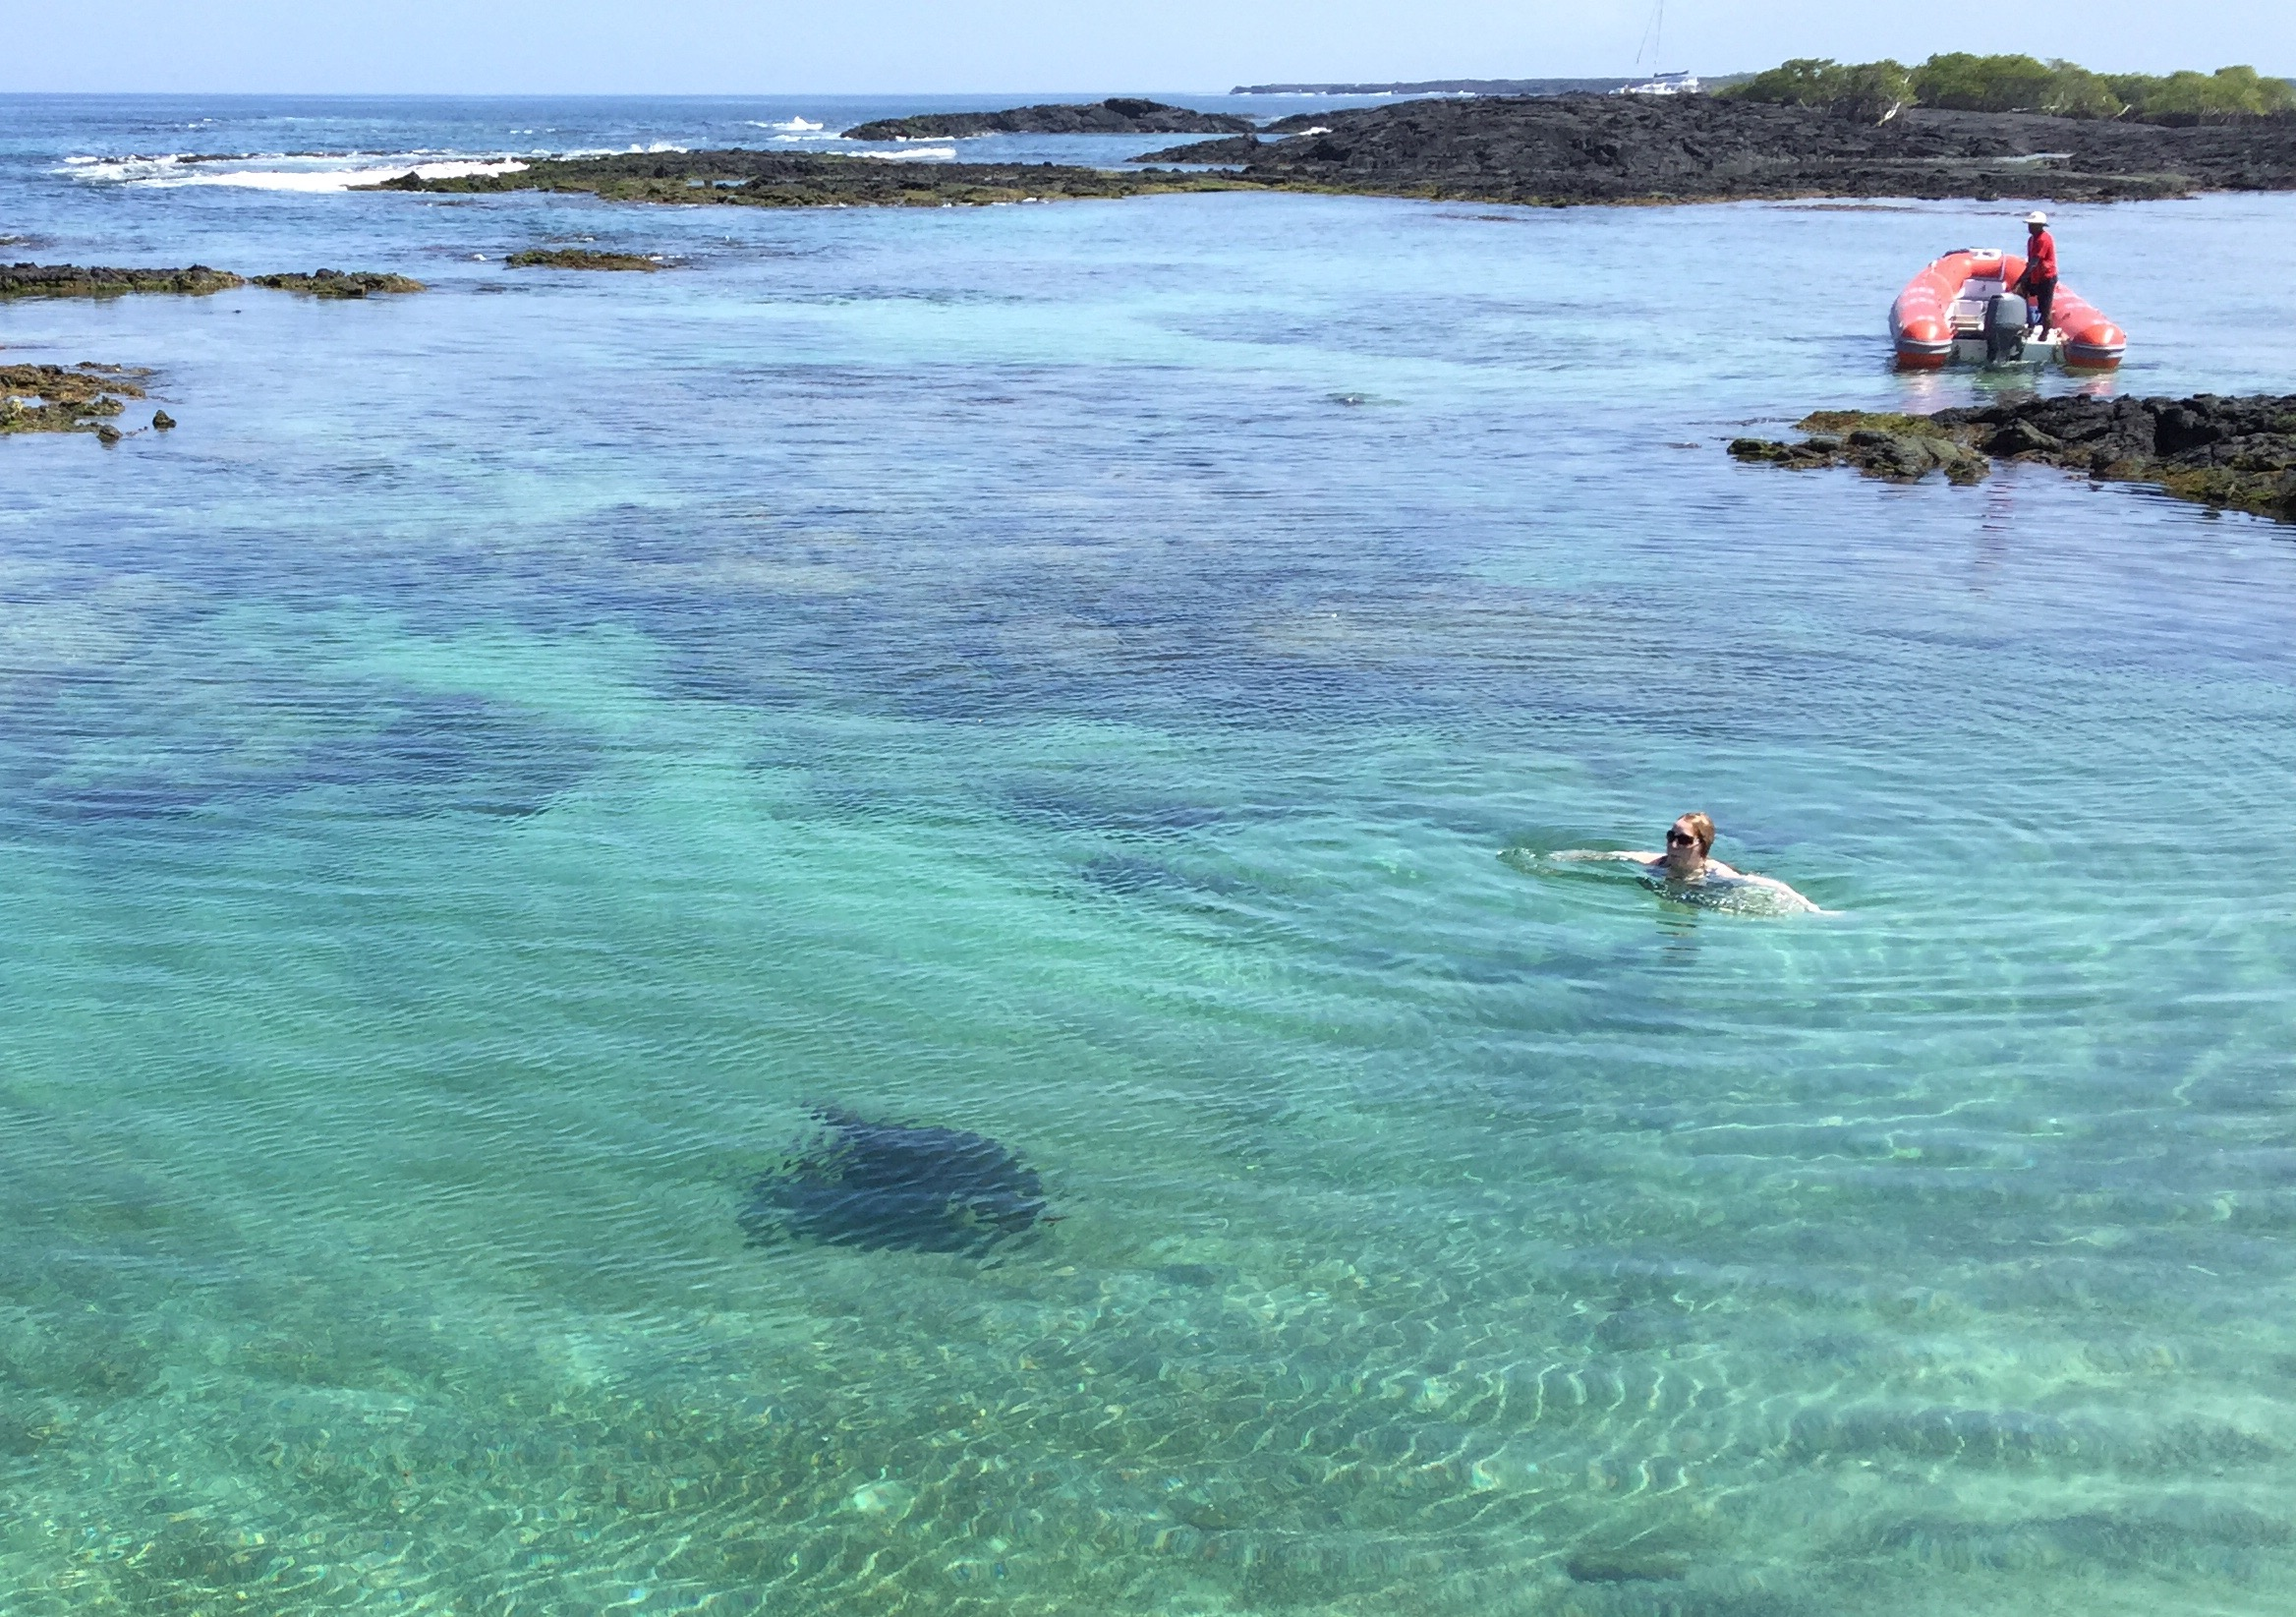 Swimming in a lagoon close to a Pacific green turtle, (darkish spot in the lower quarter of the photo.)